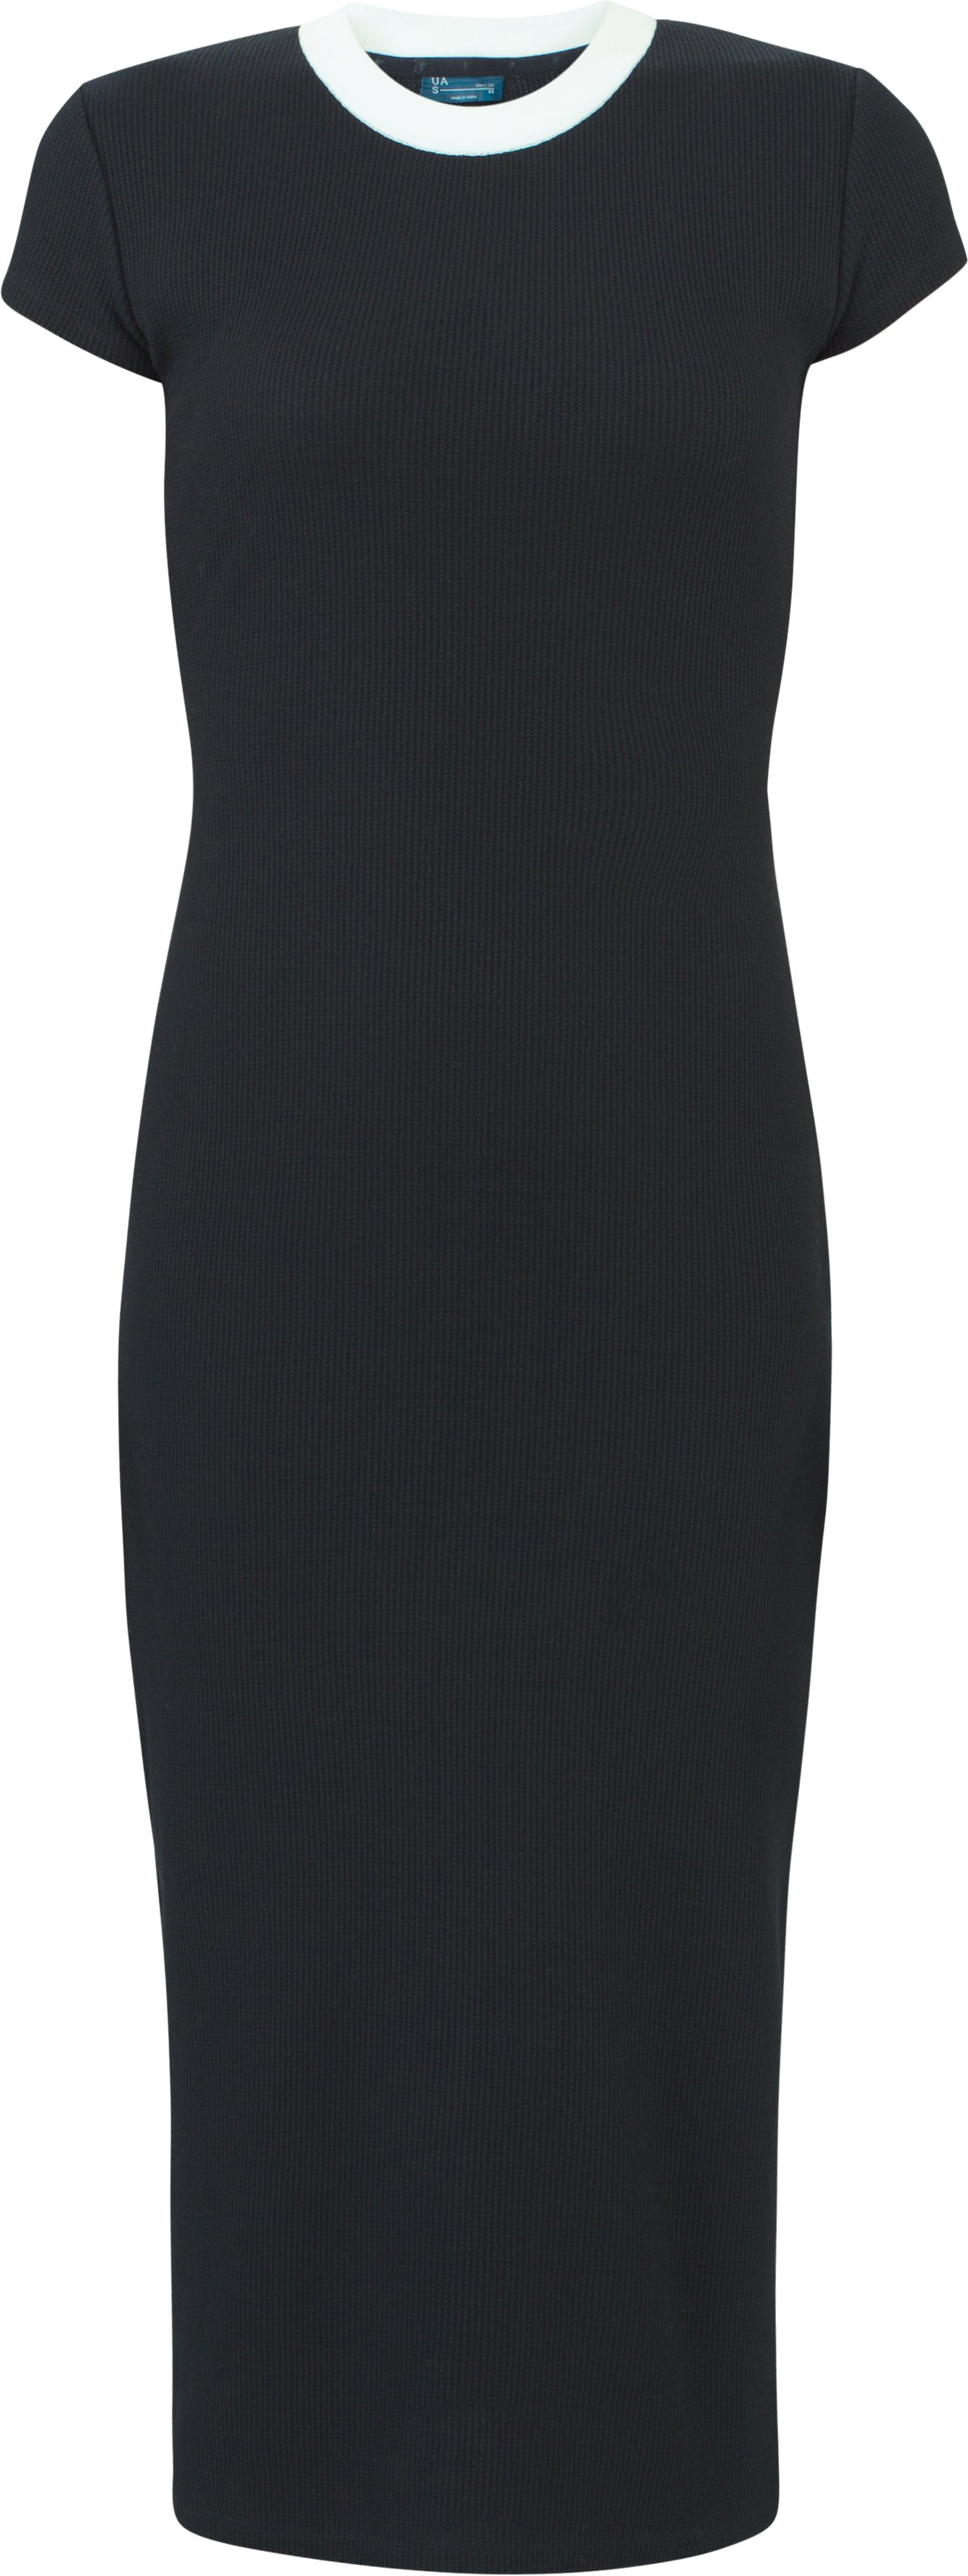 Women's UAS Tube Dress, Black ,